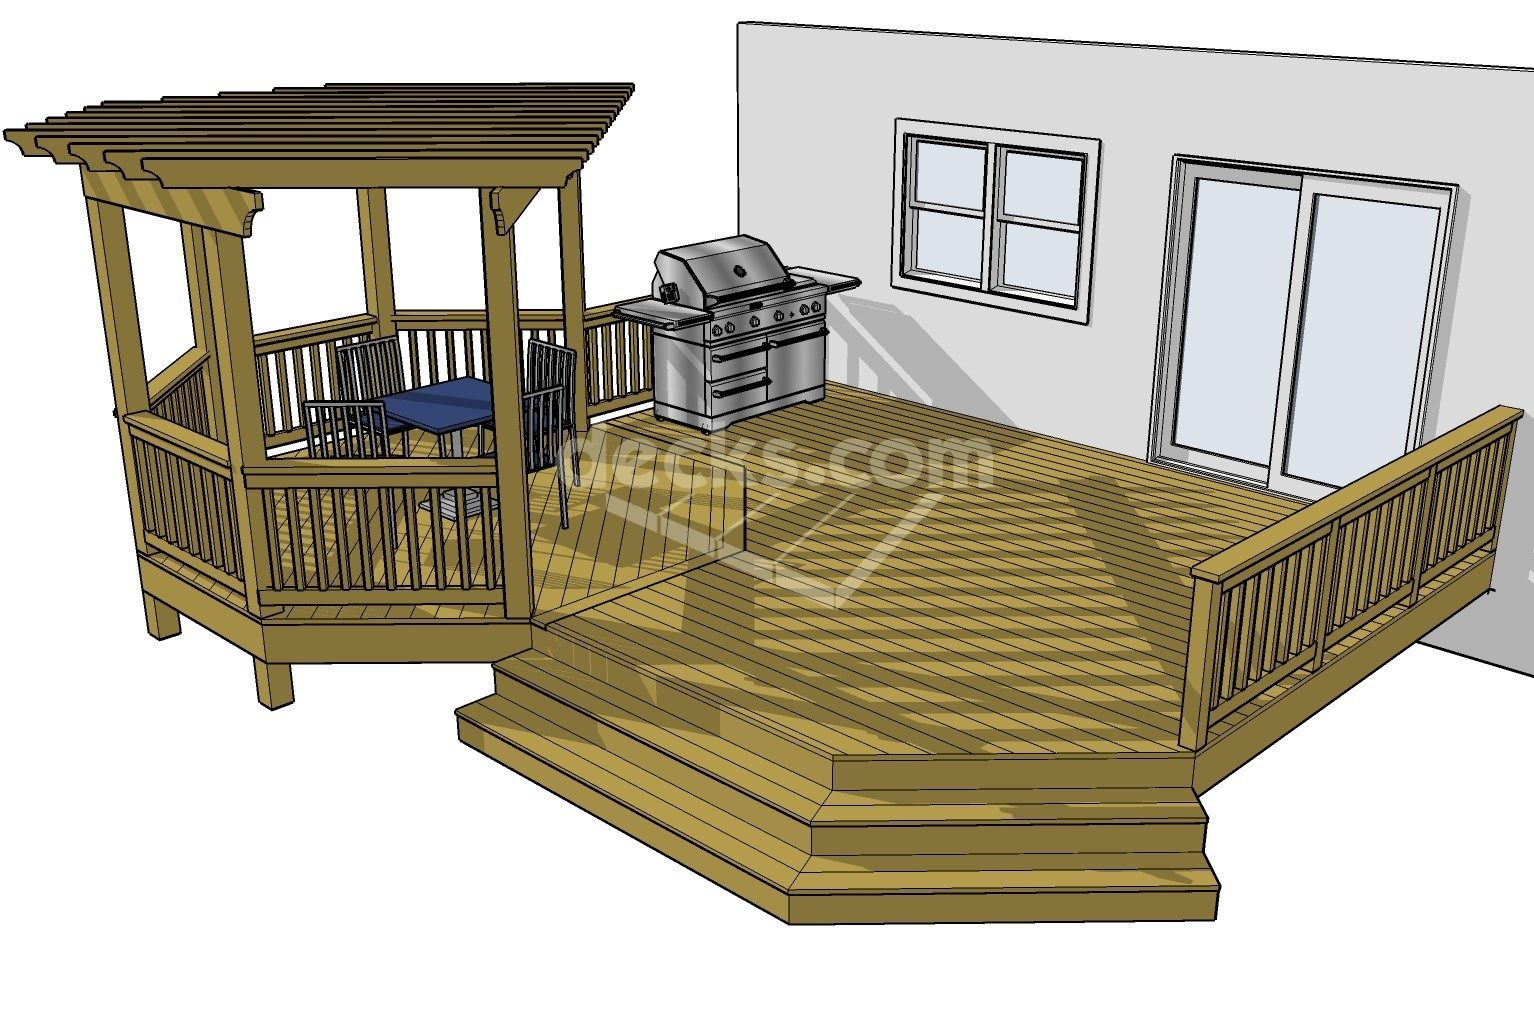 10 tips for designing a great deck for Patio planner online free